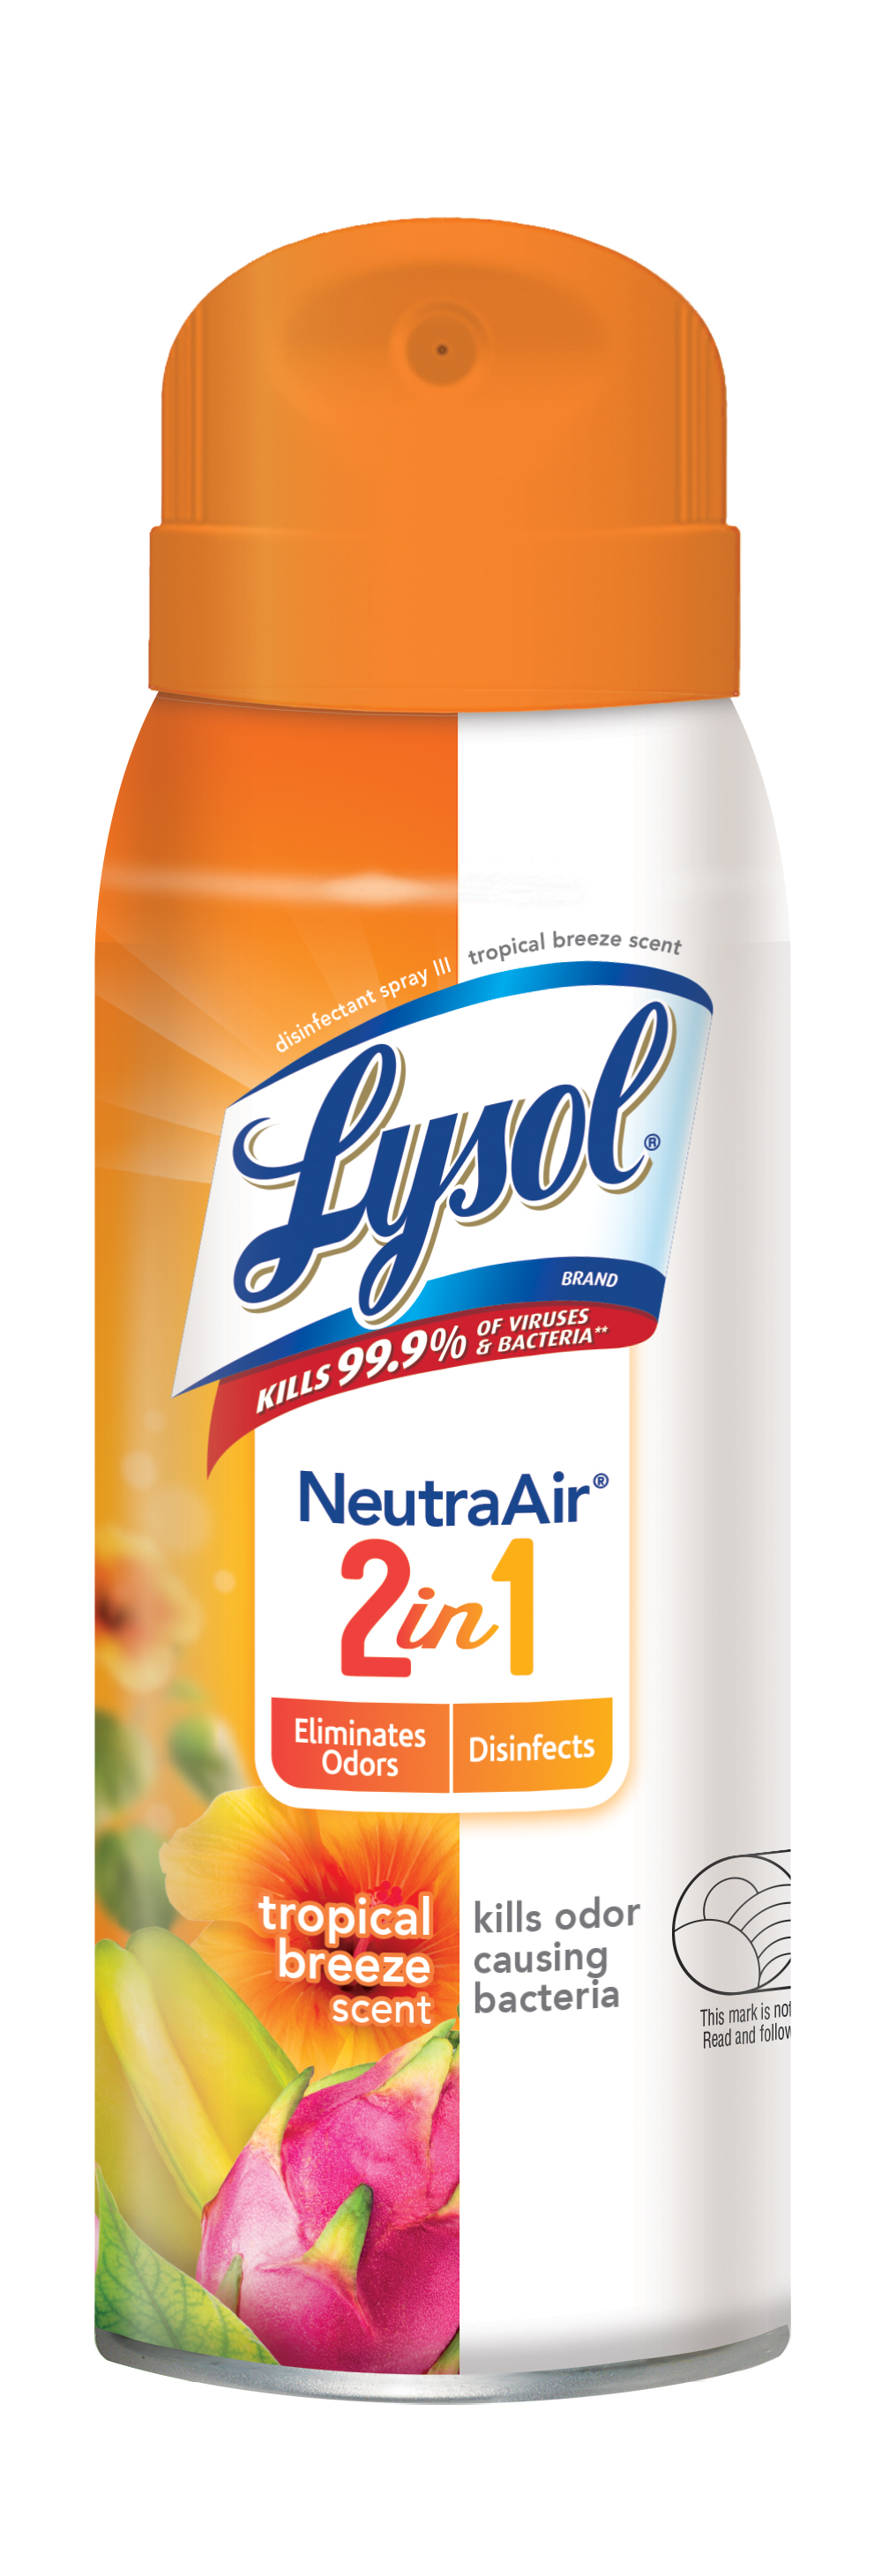 Lysol Disinfectant Spray, Neutra Air Tropical Breeze Scent 10 oz